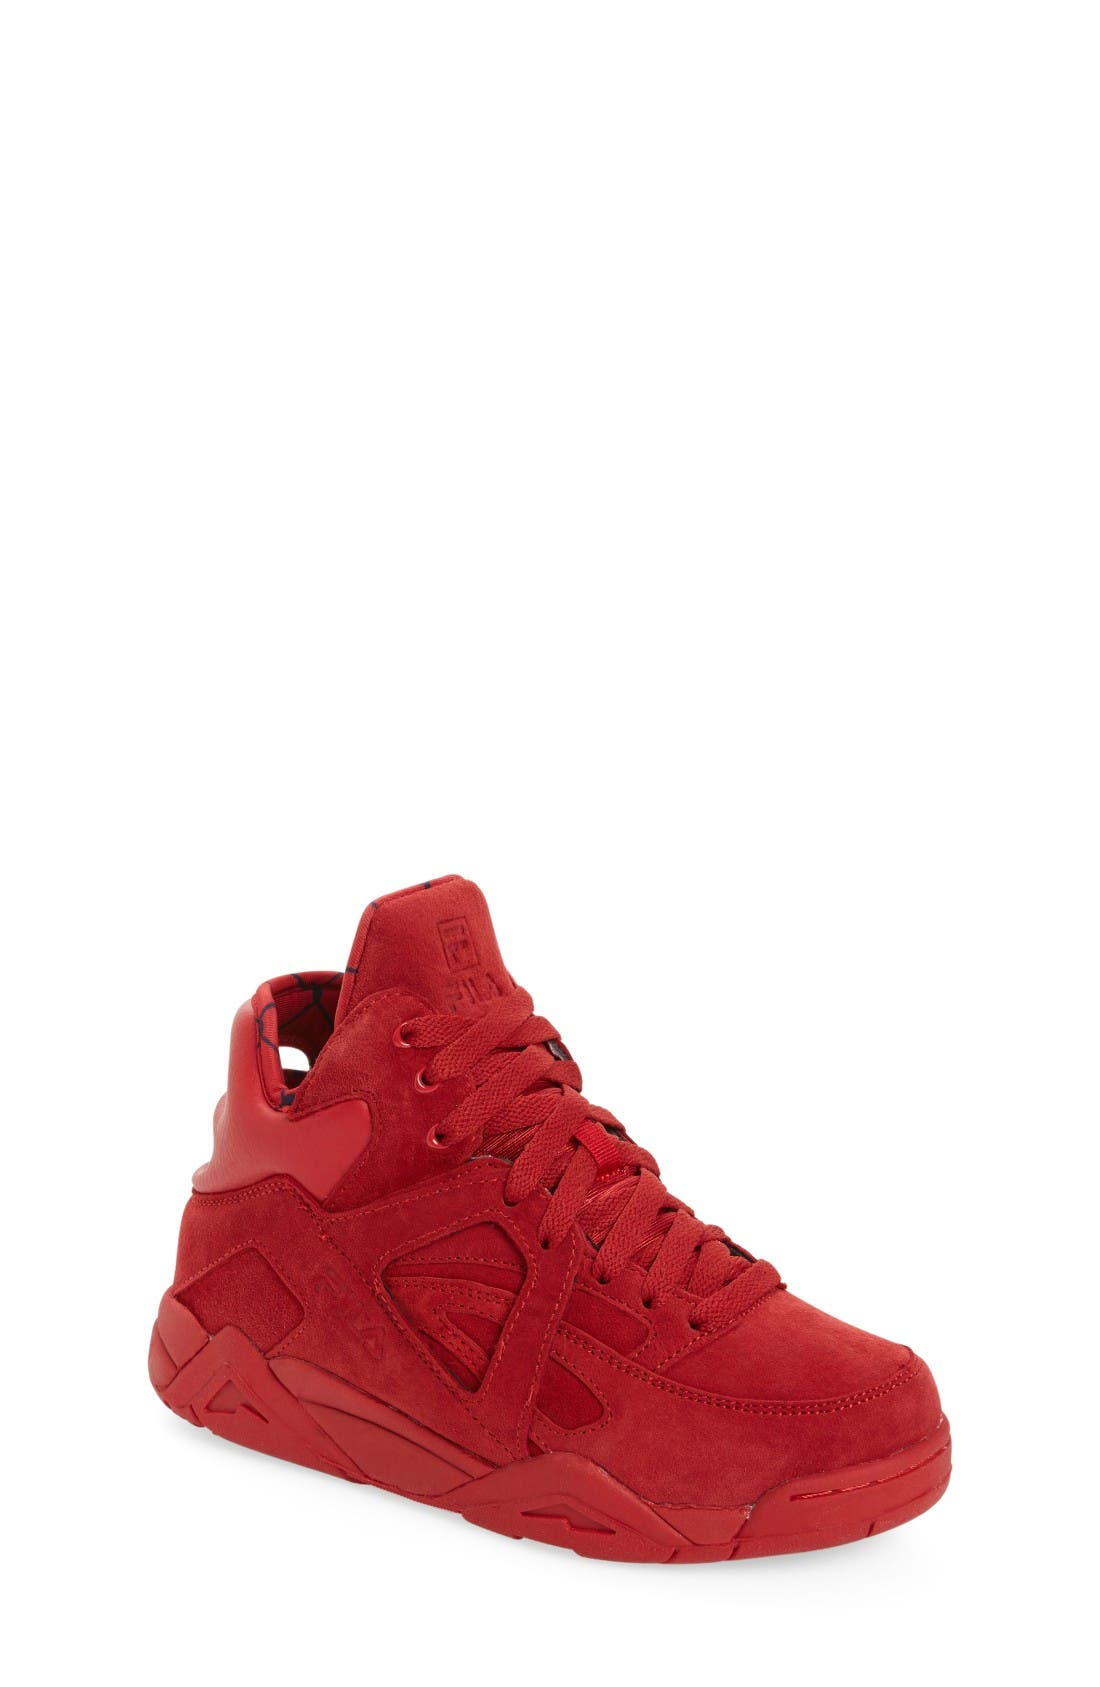 Alternate Image 1 Selected - FILA The Cage High Top Sneaker (Big Kid)